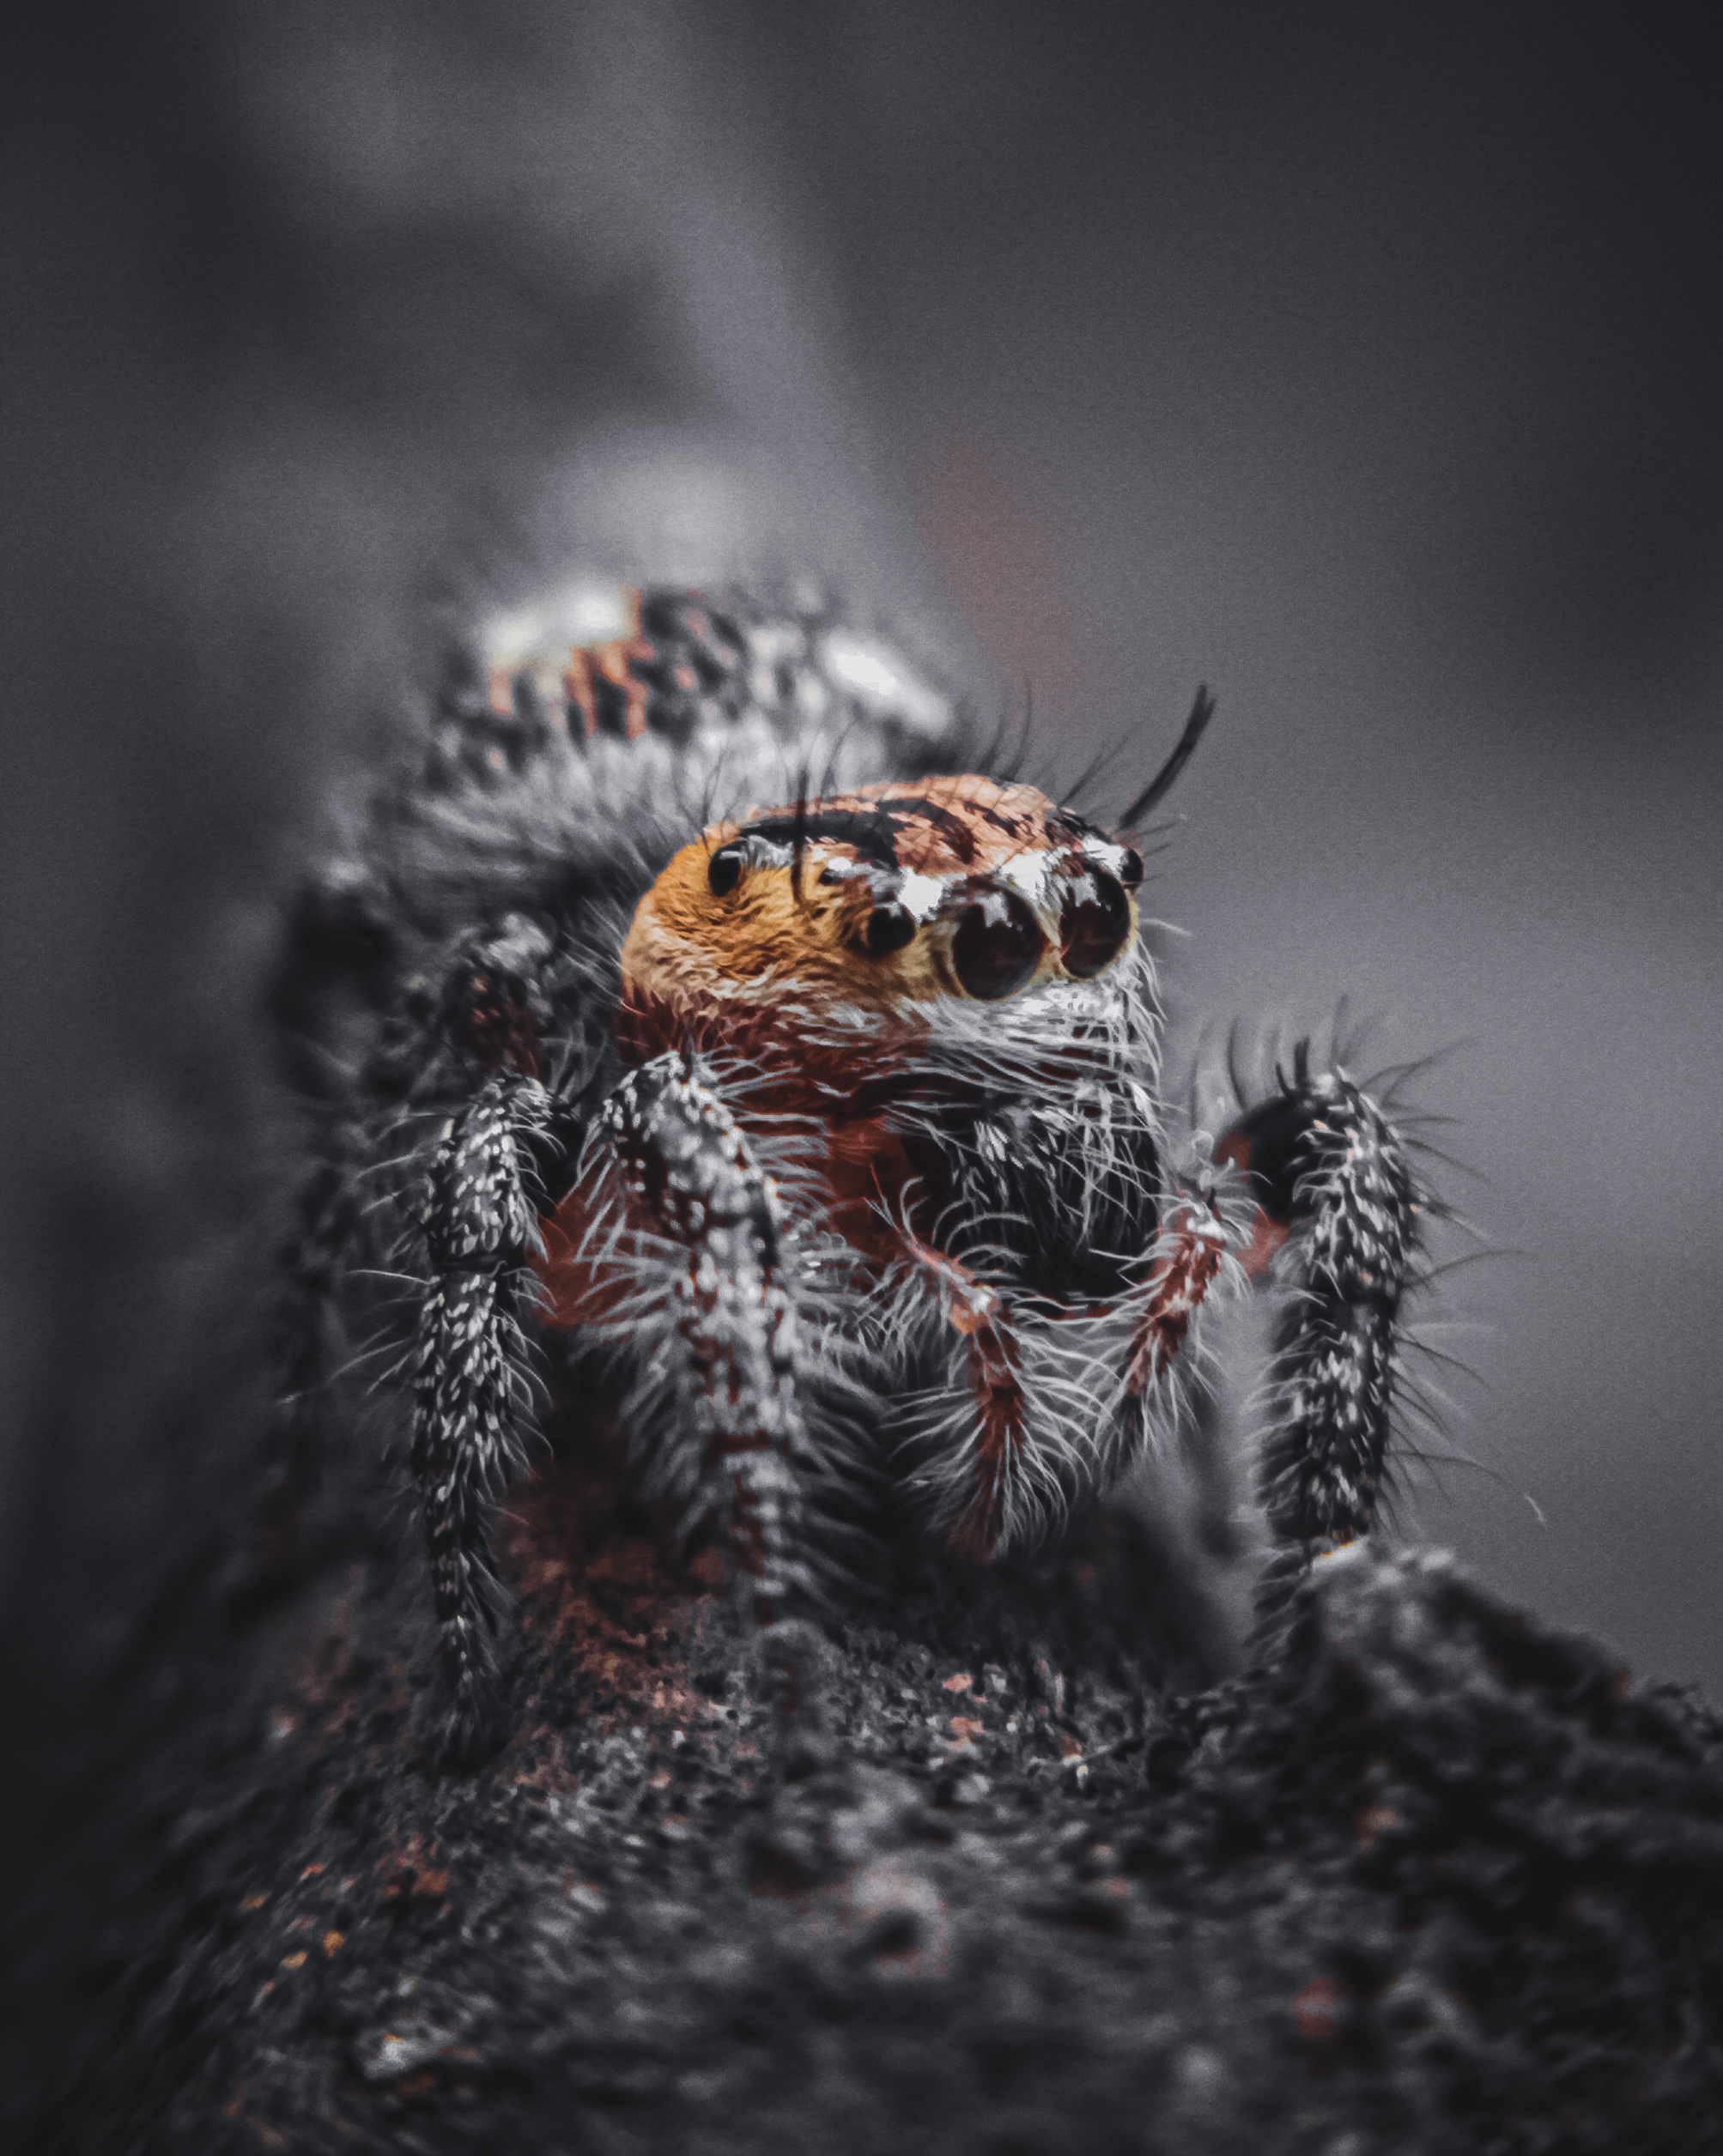 A toxic wolf spider